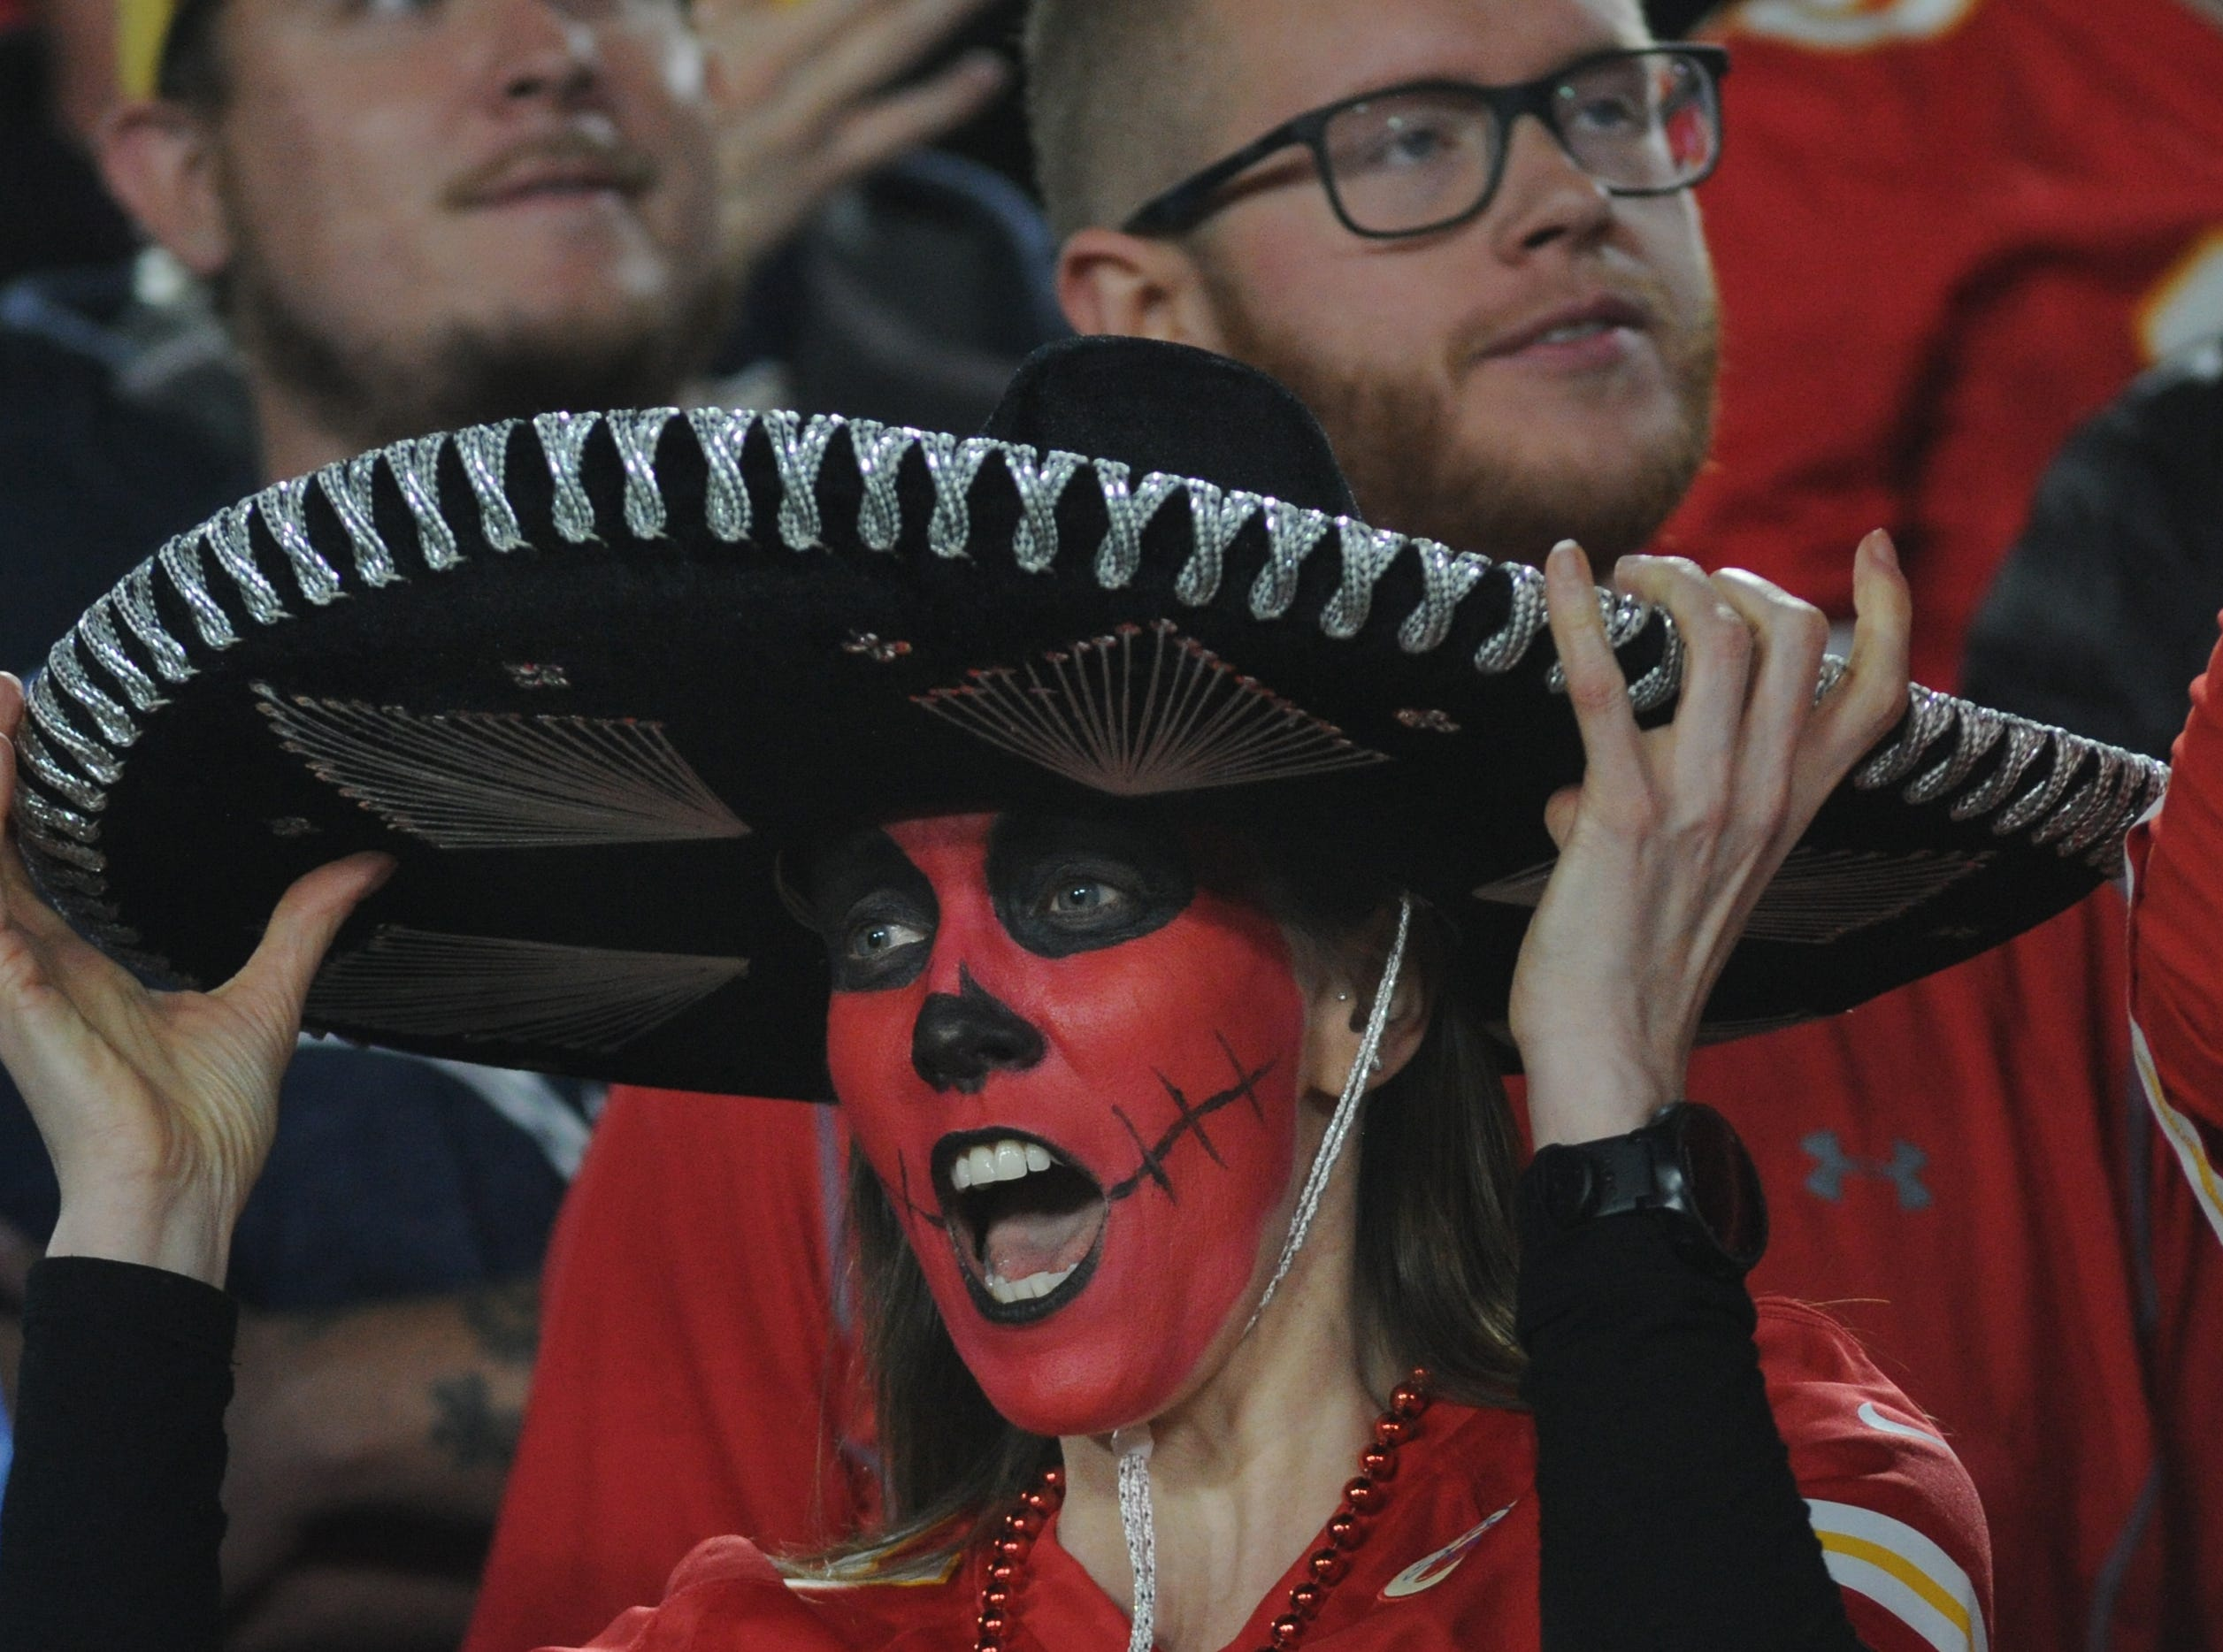 A Chiefs fan cheers for the team on Monday against the Rams at the Coliseum.